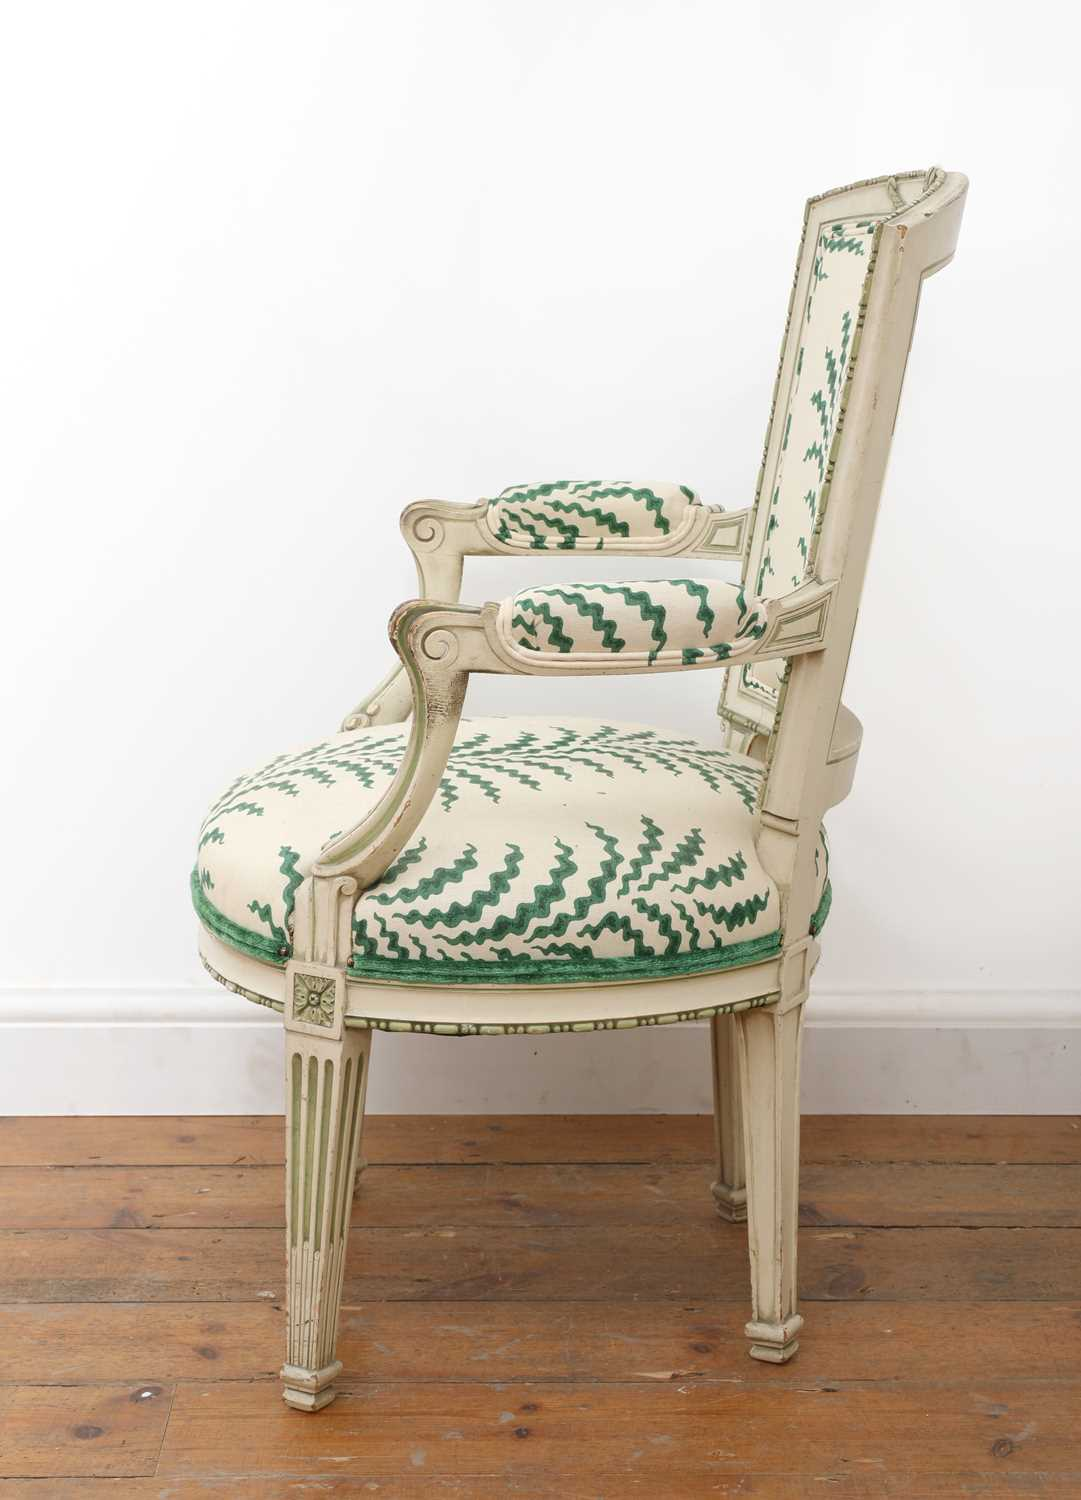 A French Louis XVI-style painted fauteuil, - Image 2 of 7